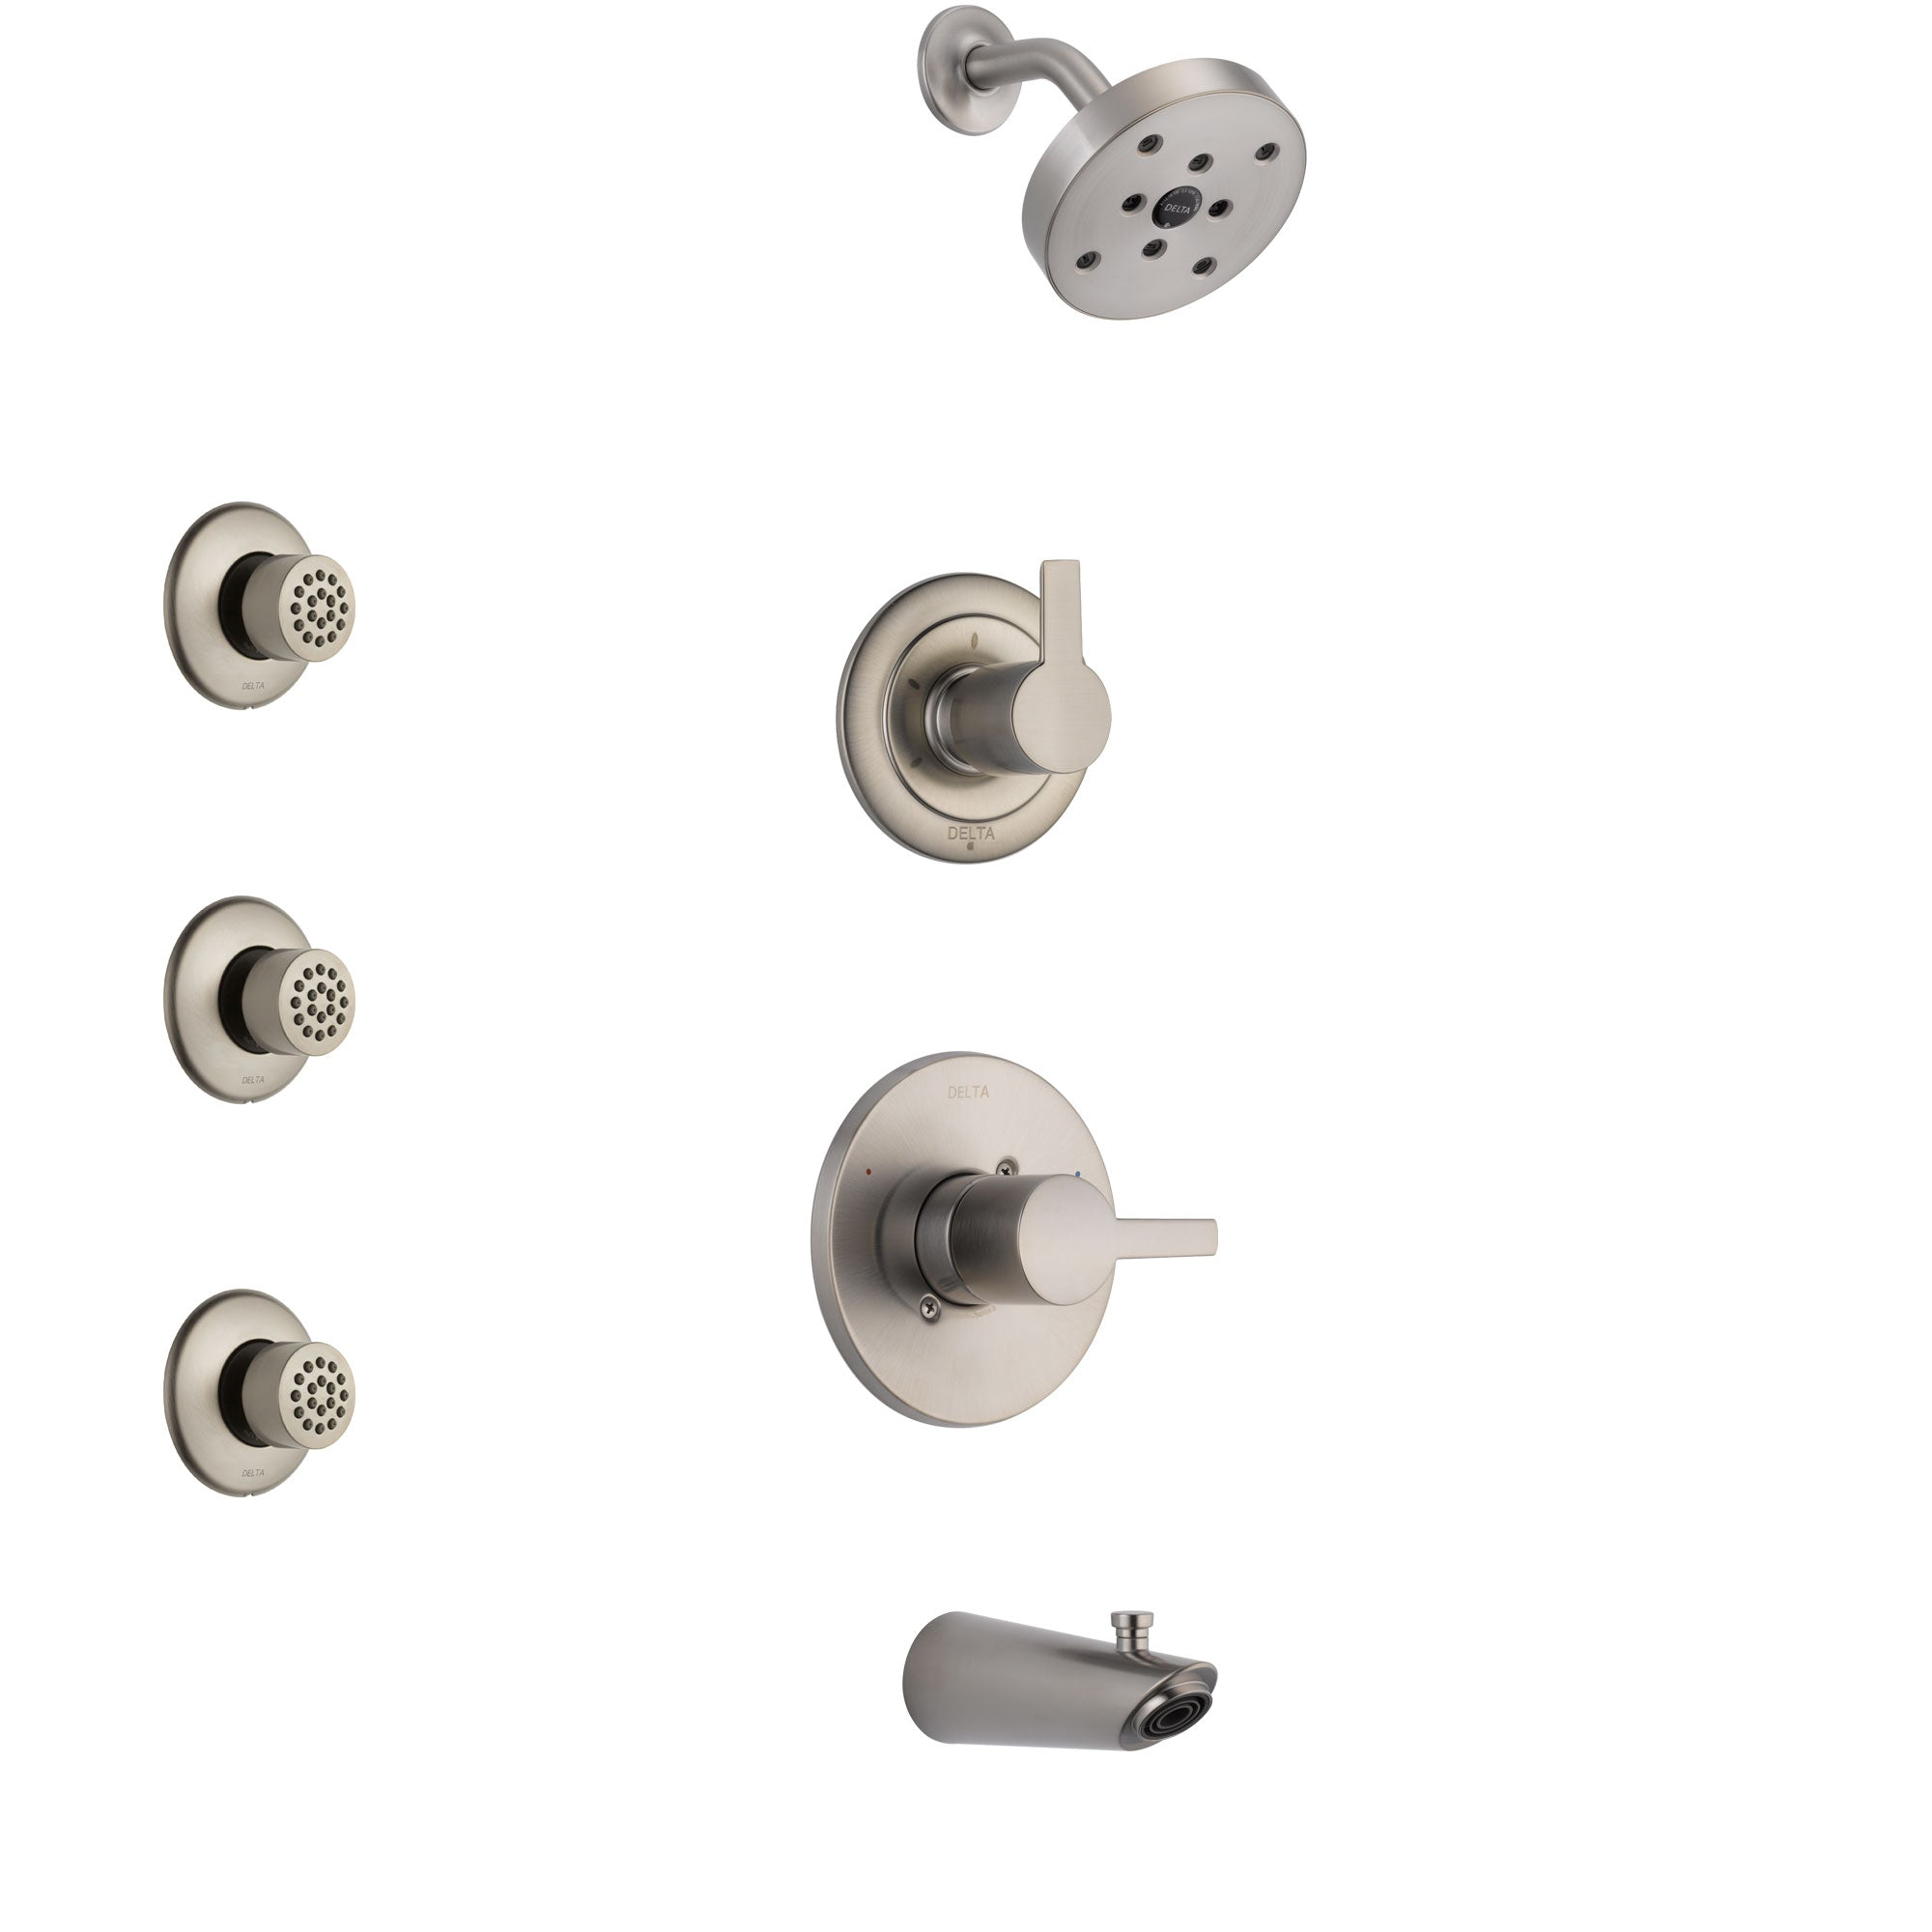 Delta Compel Stainless Steel Finish Tub and Shower System with Control Handle, 3-Setting Diverter, Showerhead, and 3 Body Sprays SS14461SS2